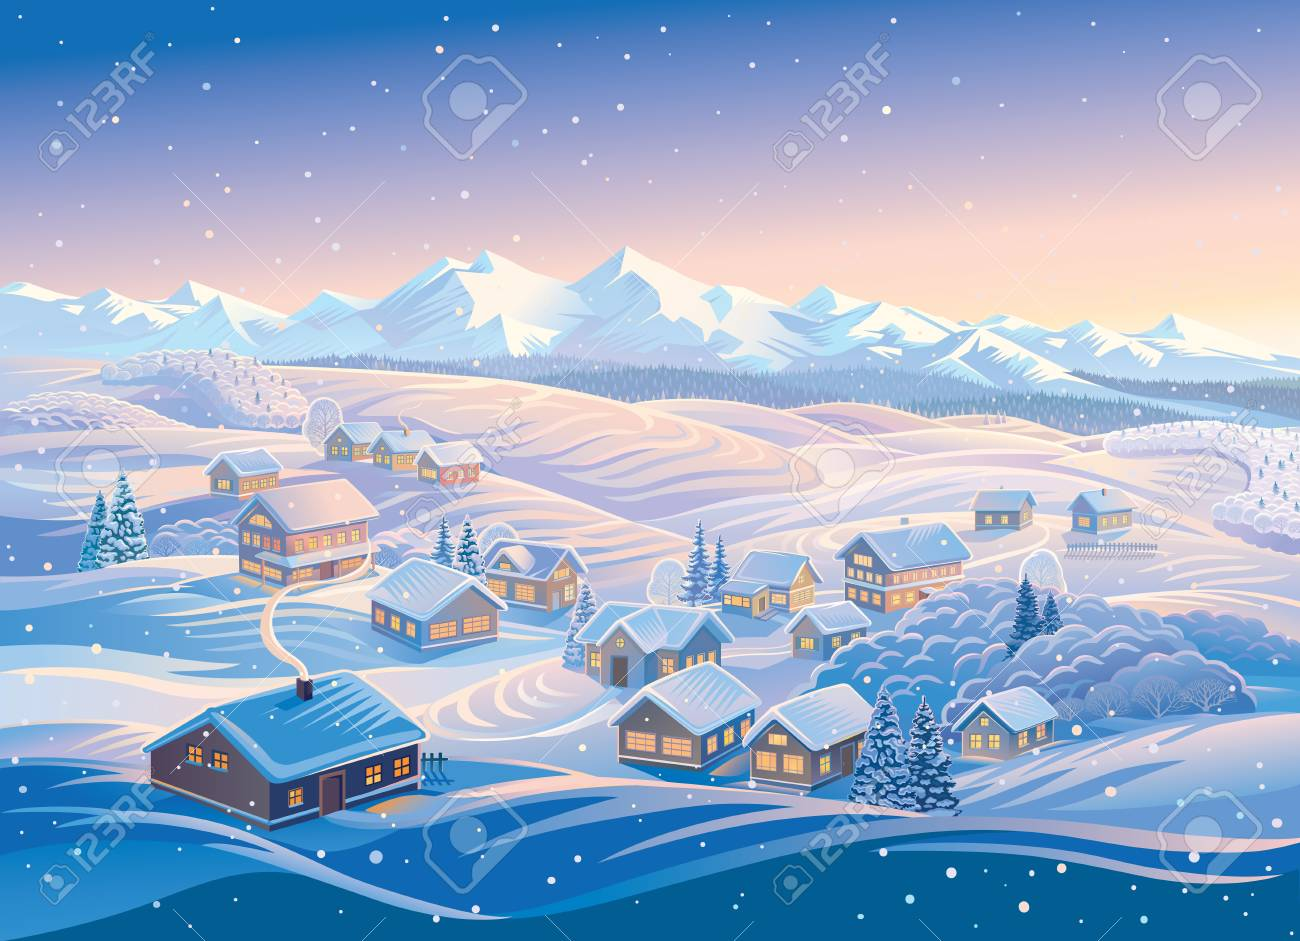 Winter landscape with a village and hills, montane forests in the snow. Vector illustration. - 96072489